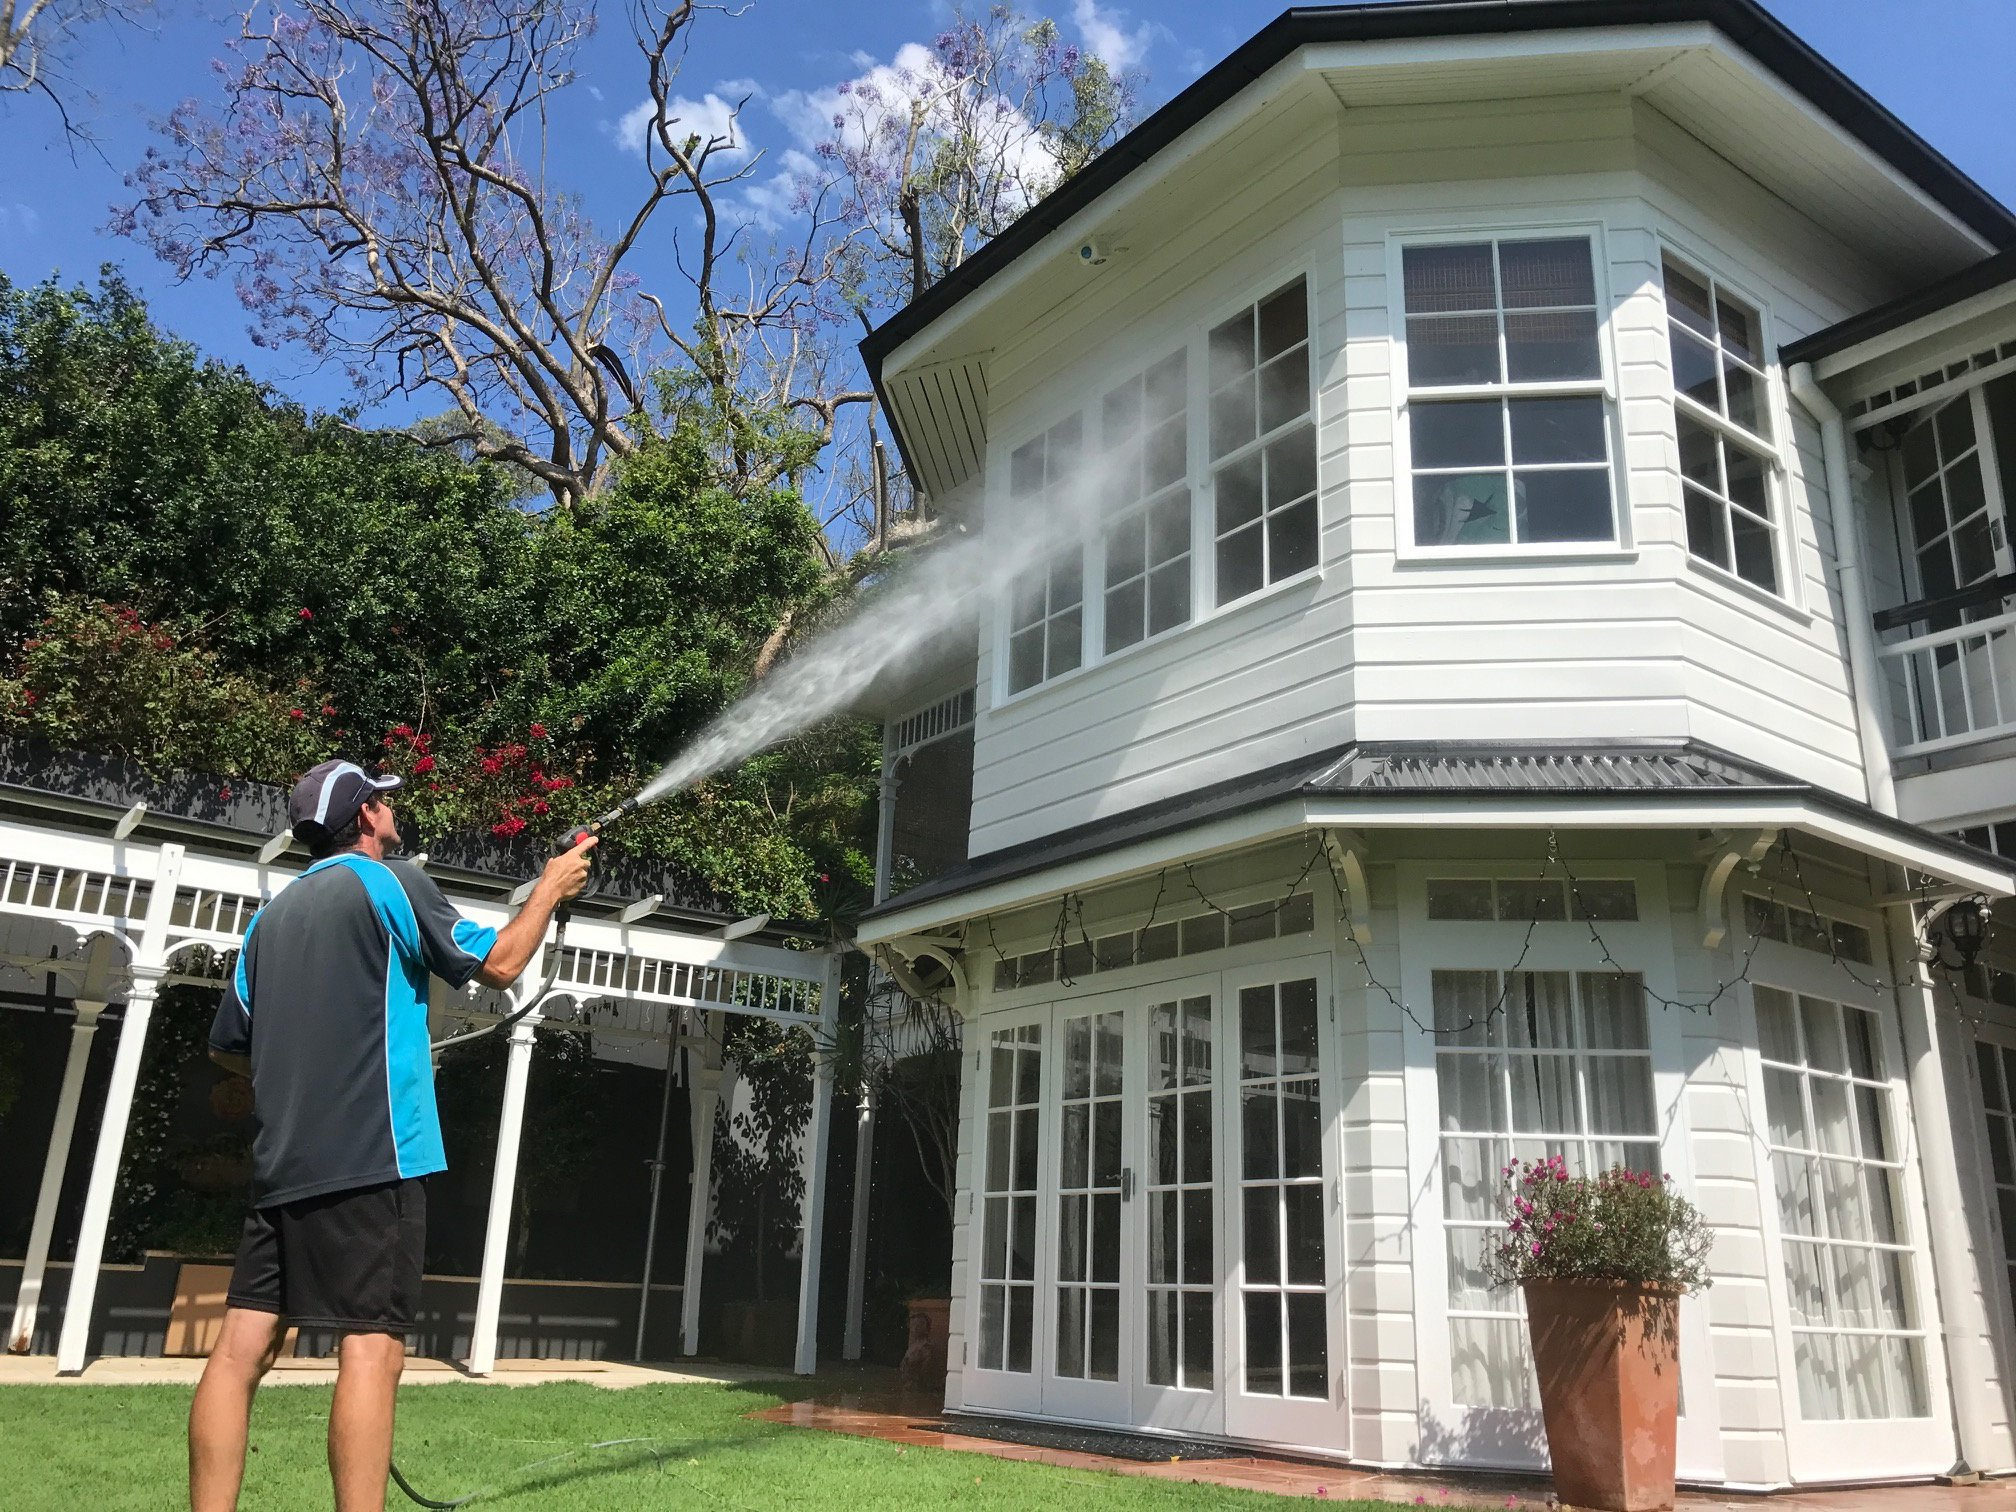 Enoggera Roof washing services